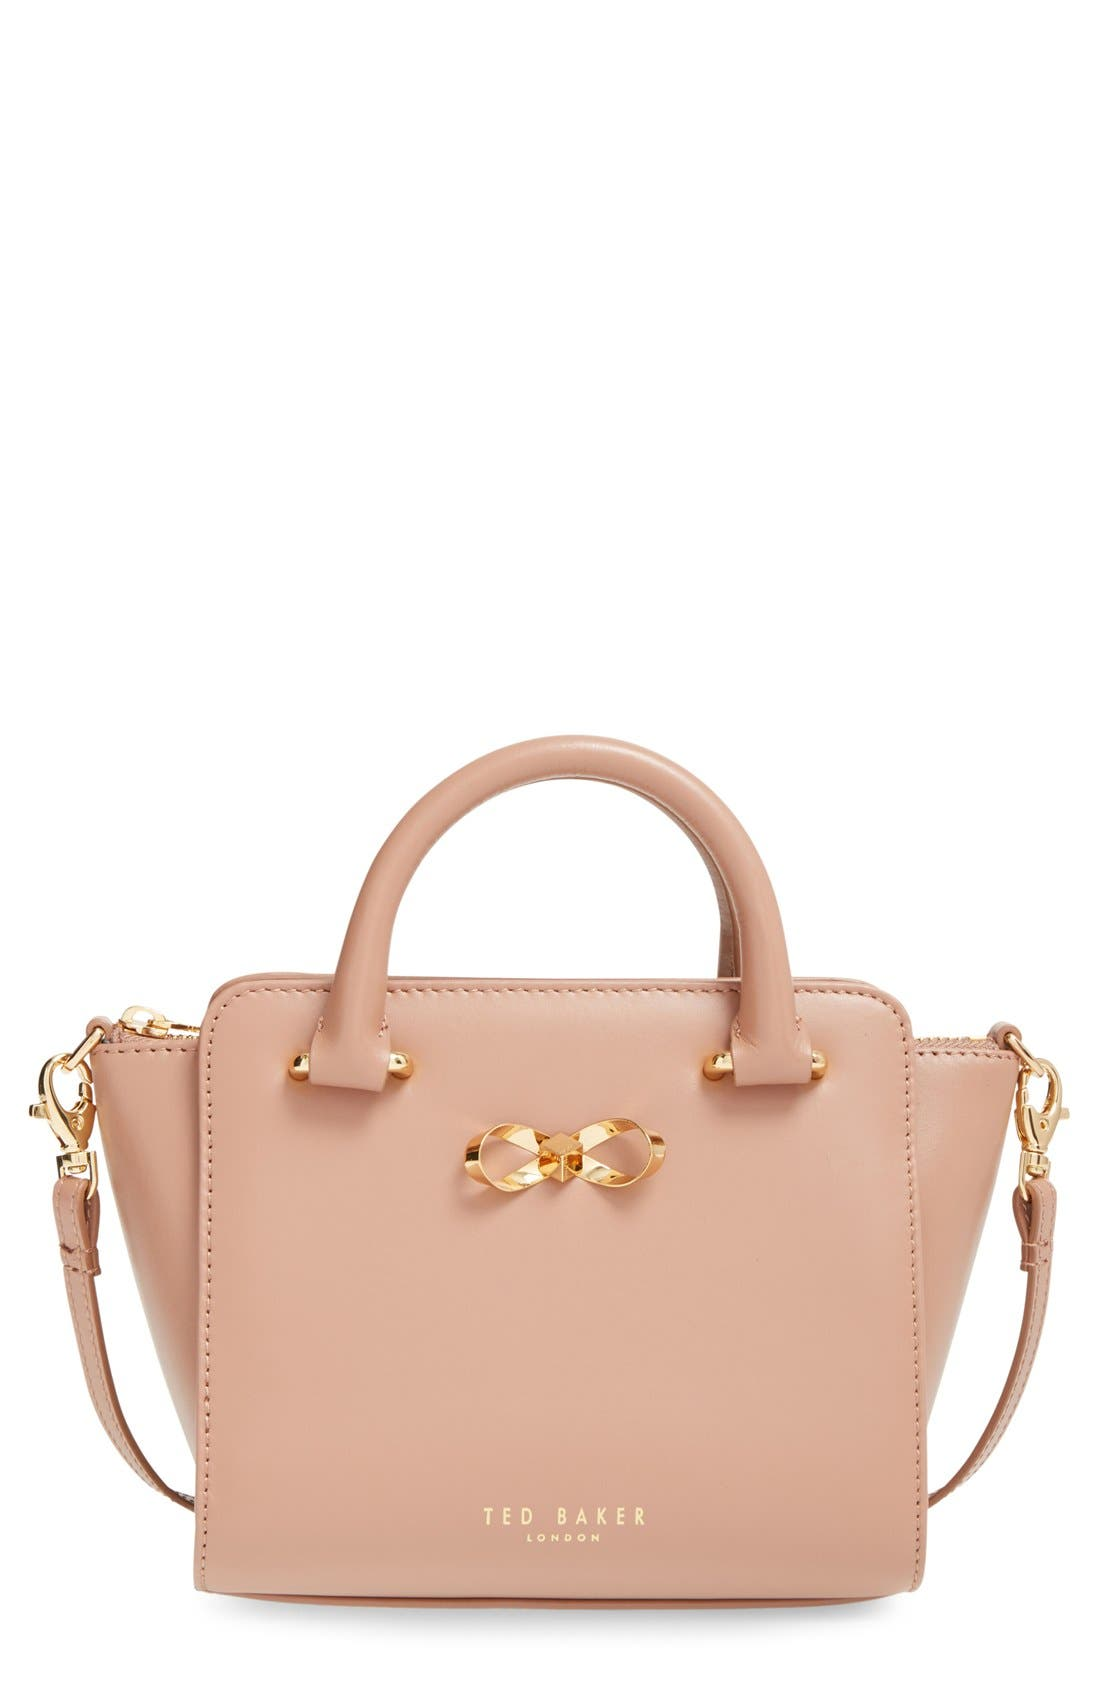 Main Image - Ted Baker London'Loop Bow' MiniLeather Tote Bag